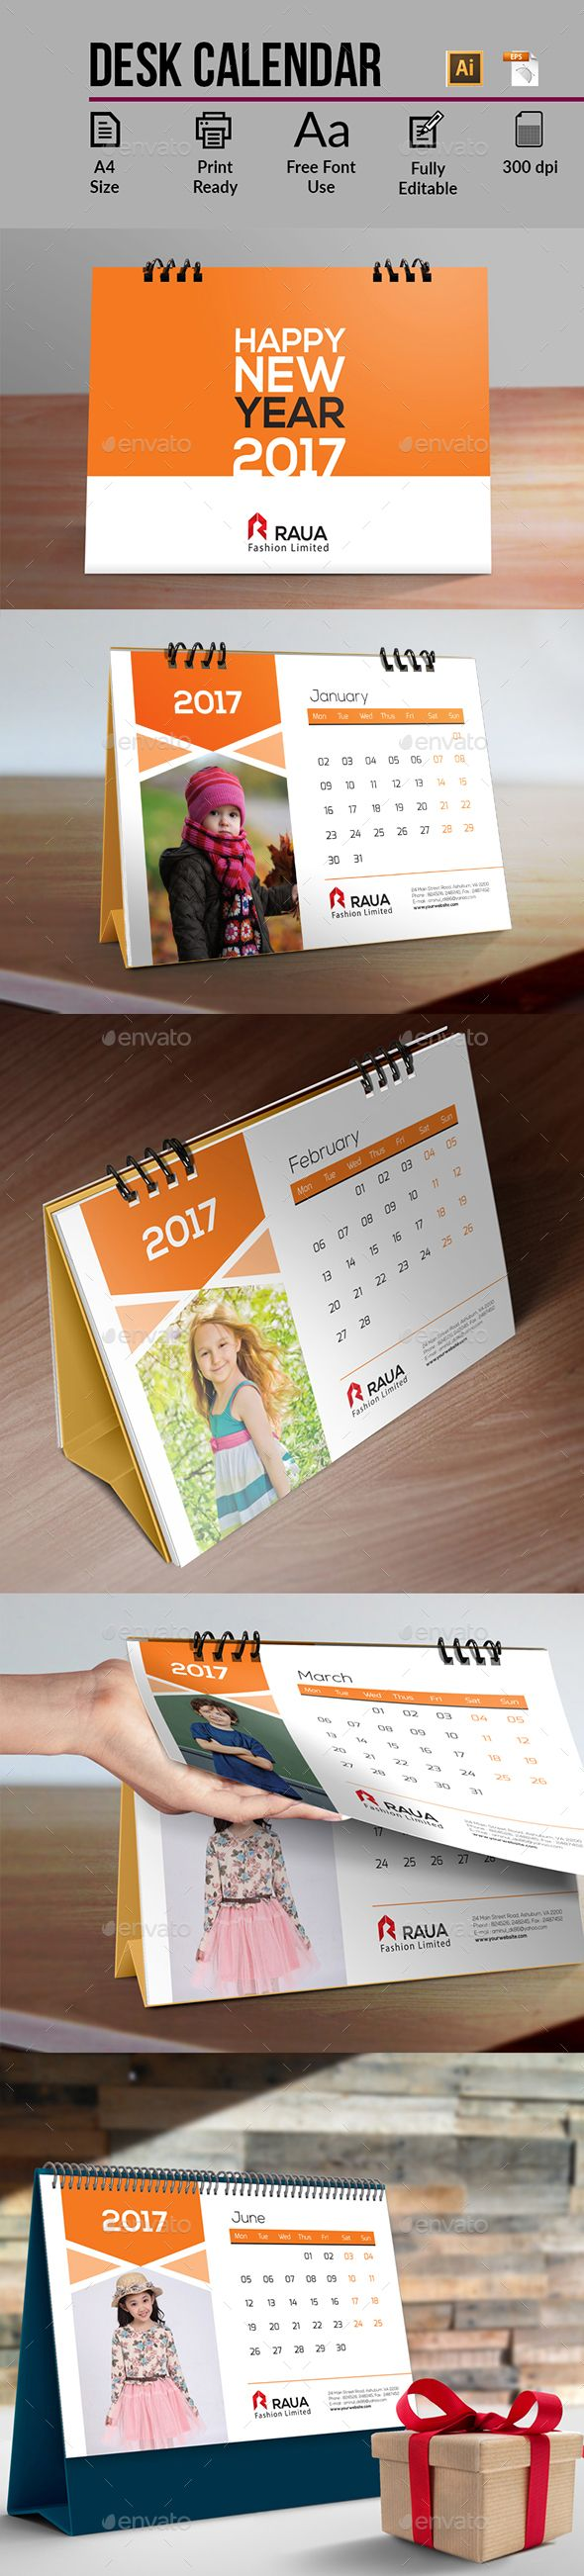 Desk Calendar 2017 Template Vector EPS, AI Illustrator